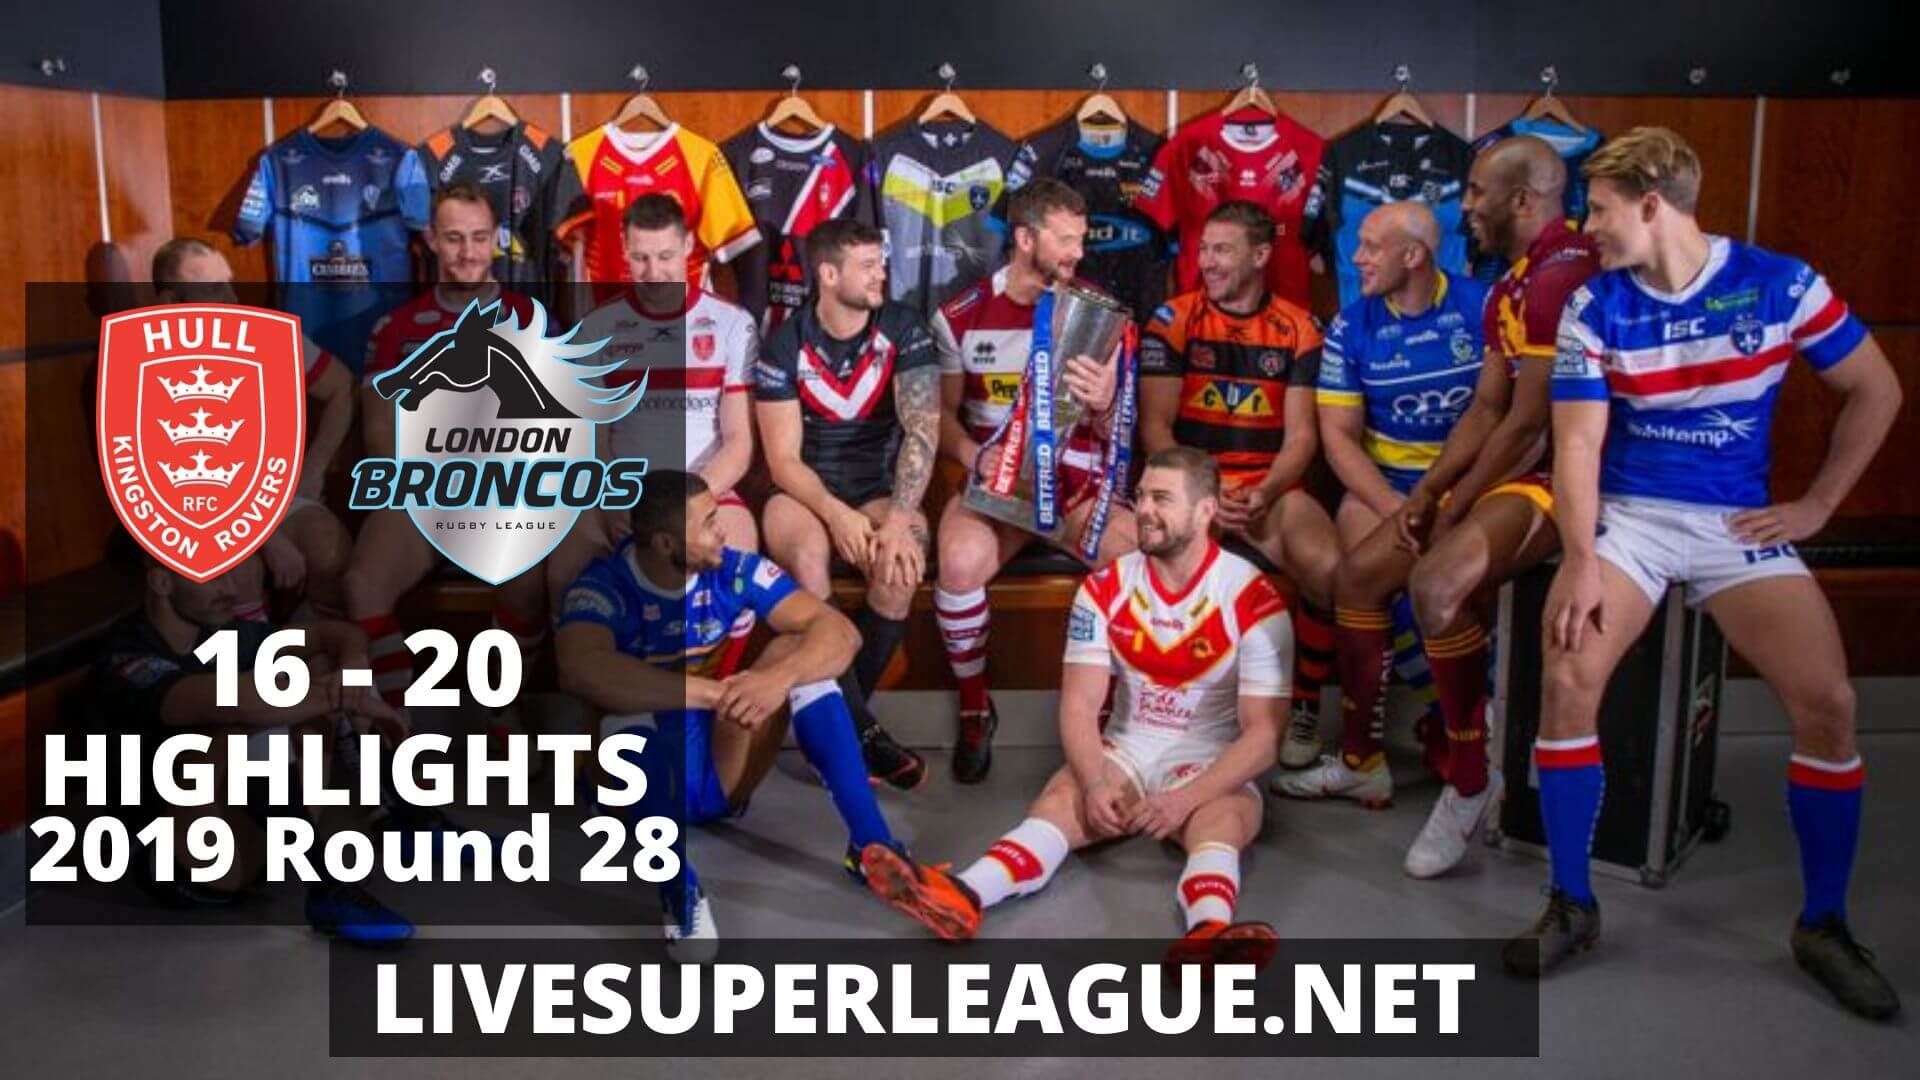 Hull Kingston Rovers Vs London Broncos Highlights 2019 Round 28